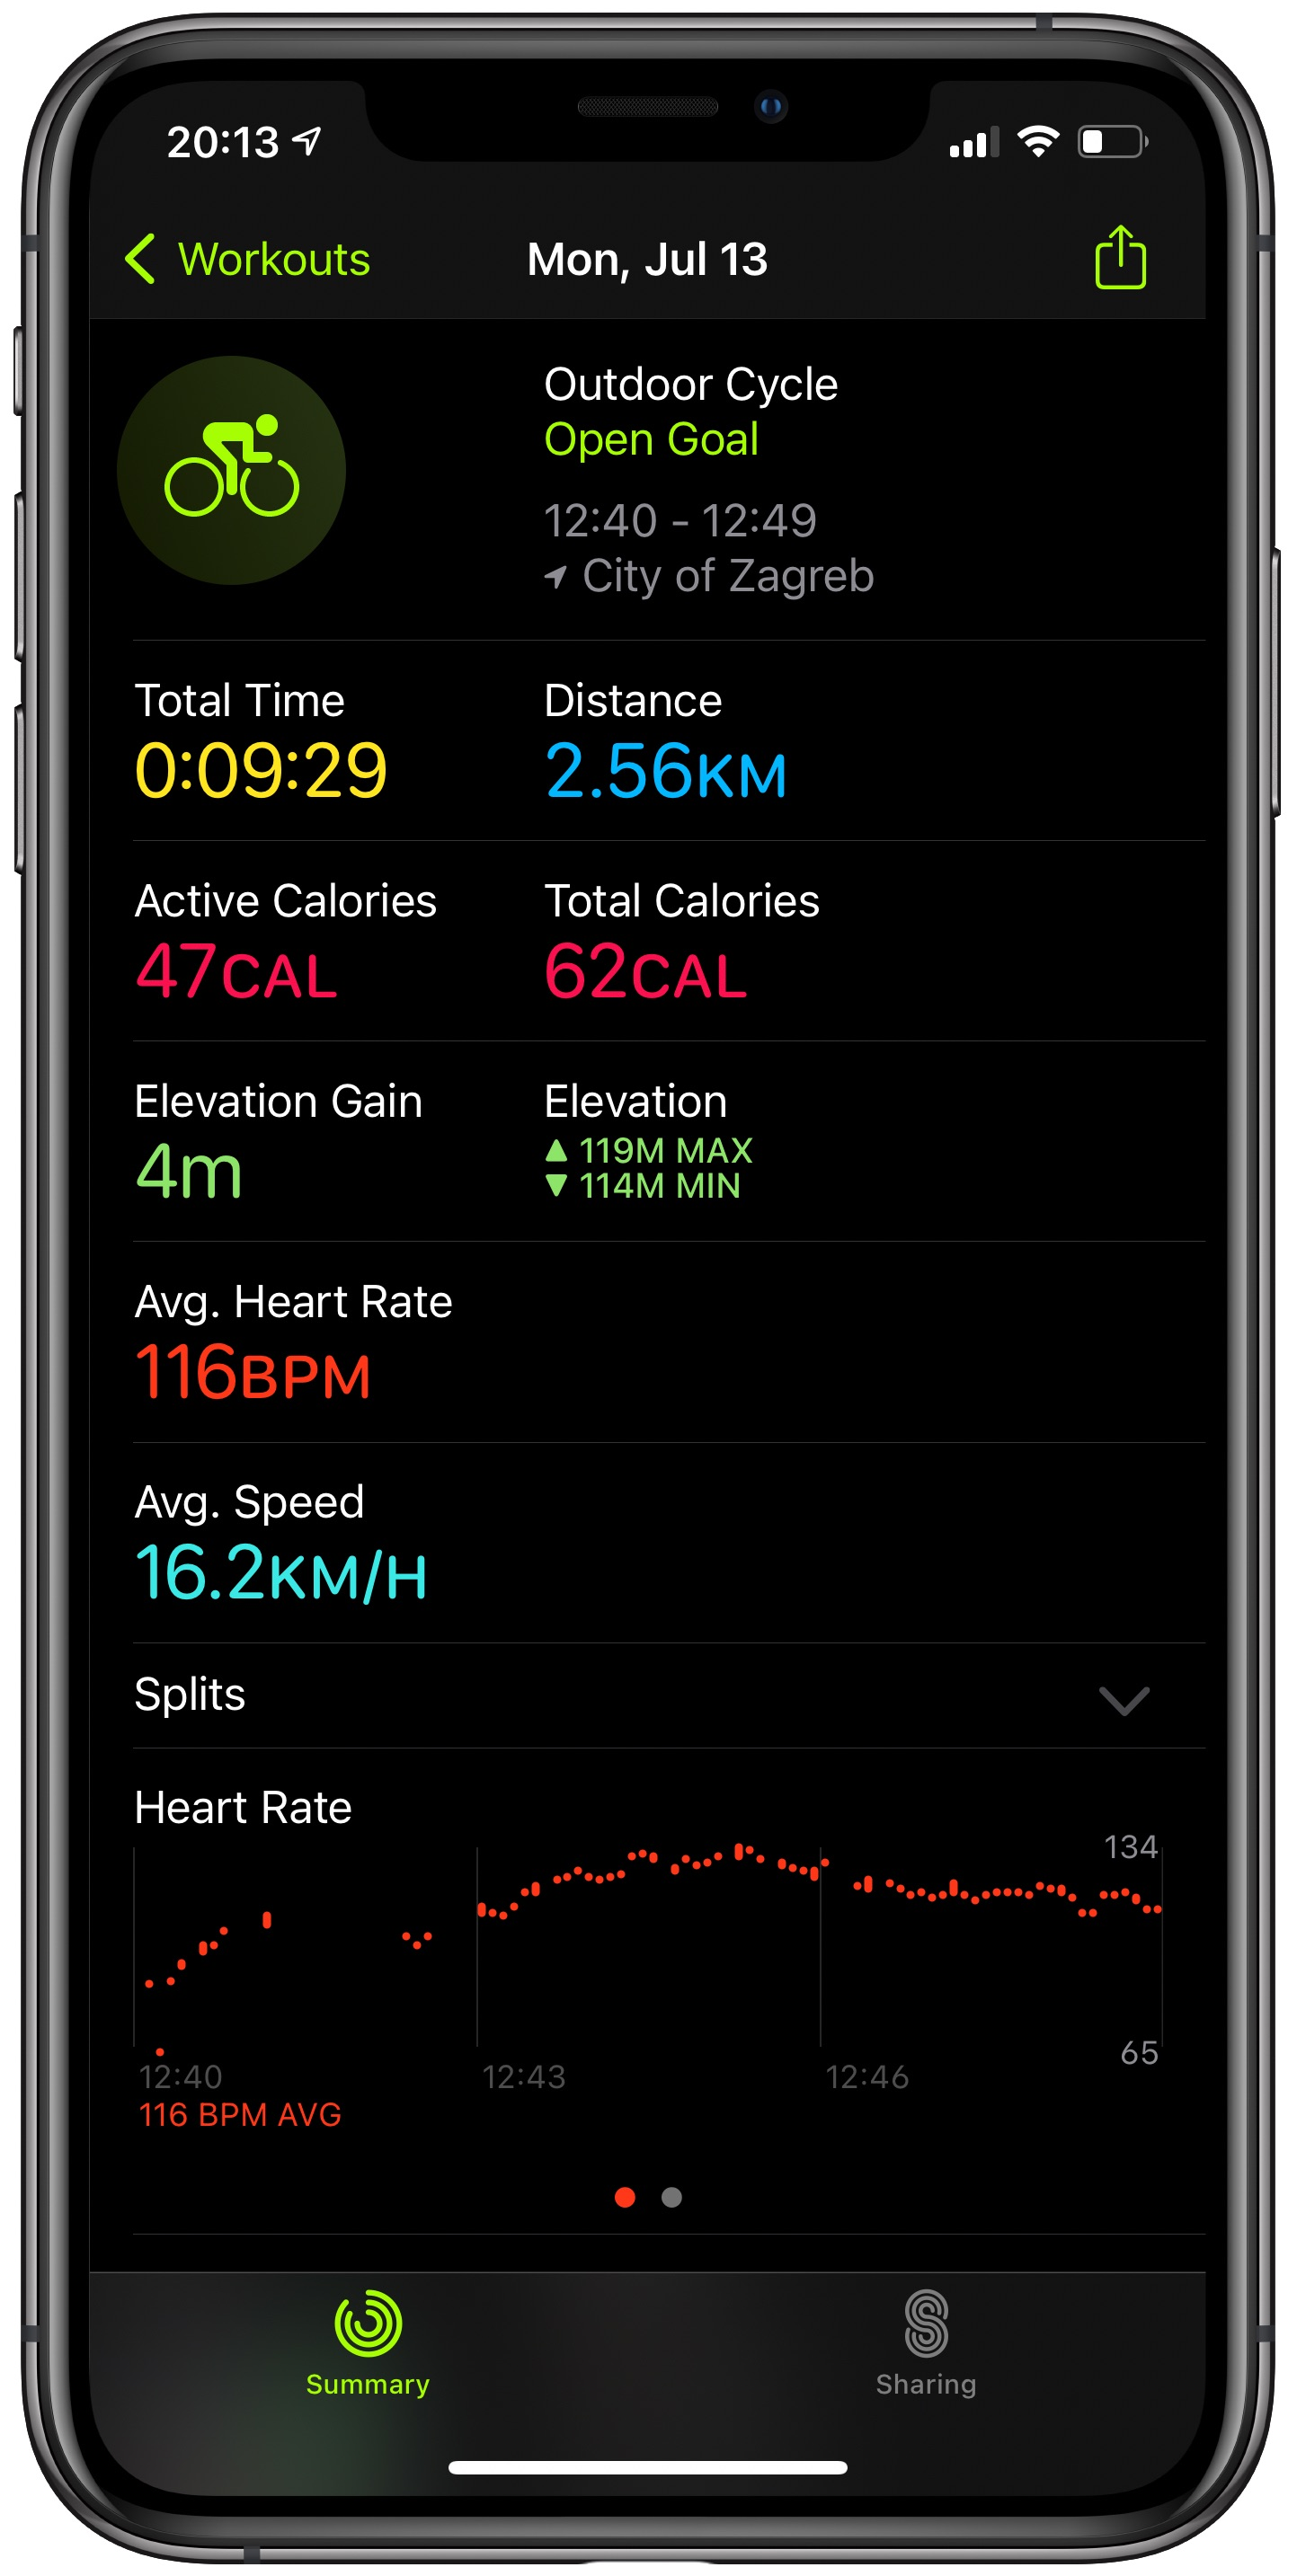 Apple Maps cycling directions - an outdoor cycle workout summary in the Fitness app on an iPhone